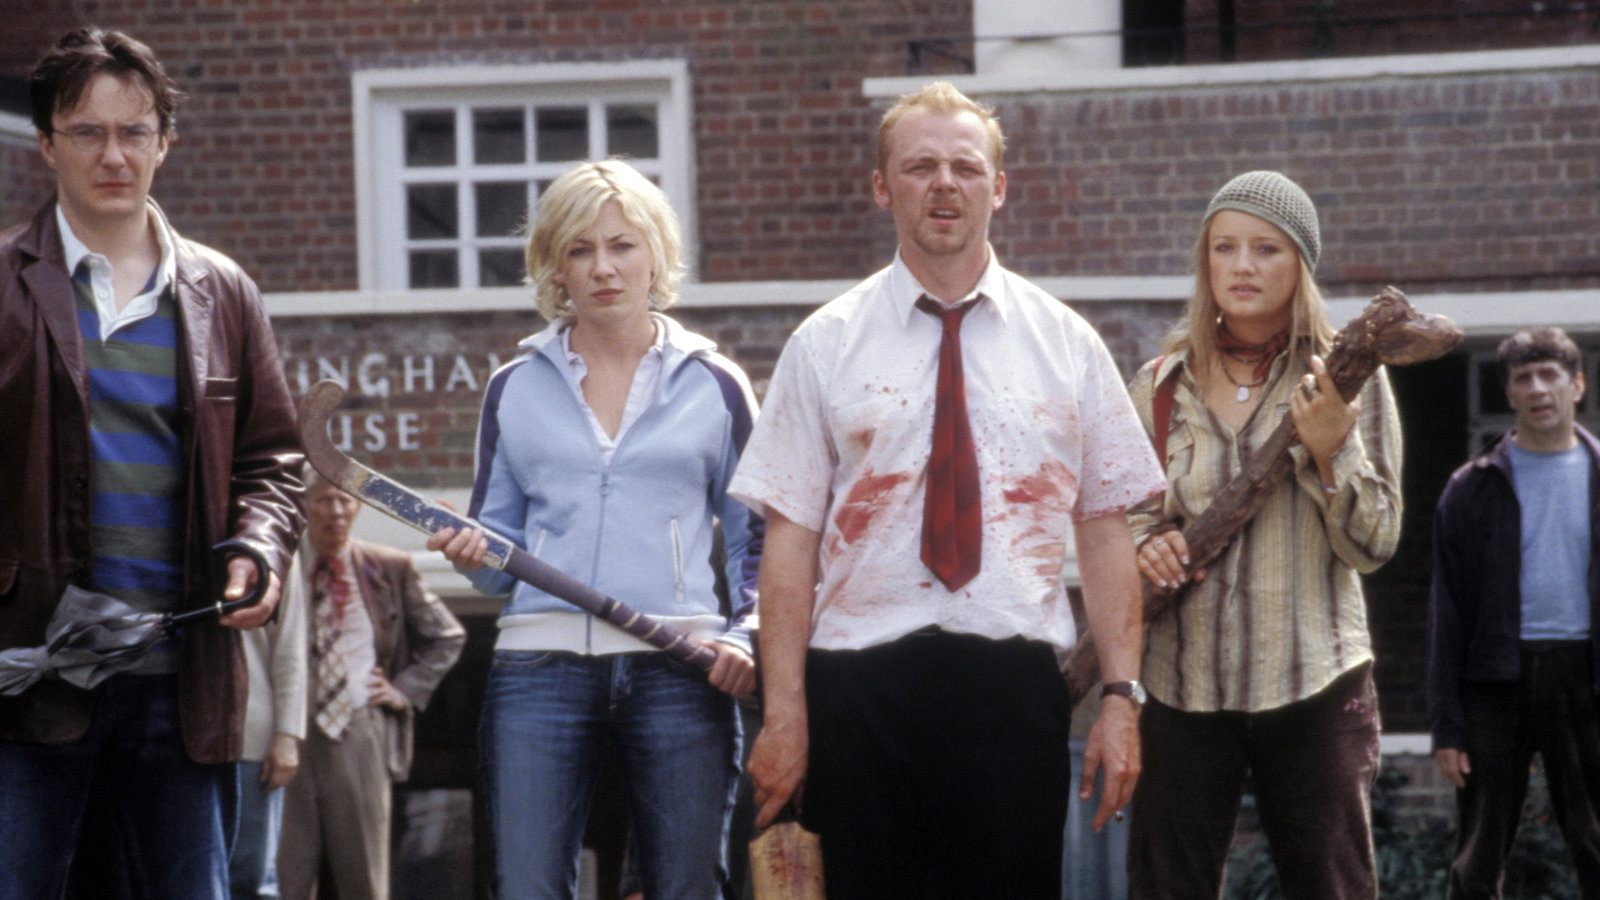 shaun_of_the_dead_1_kep